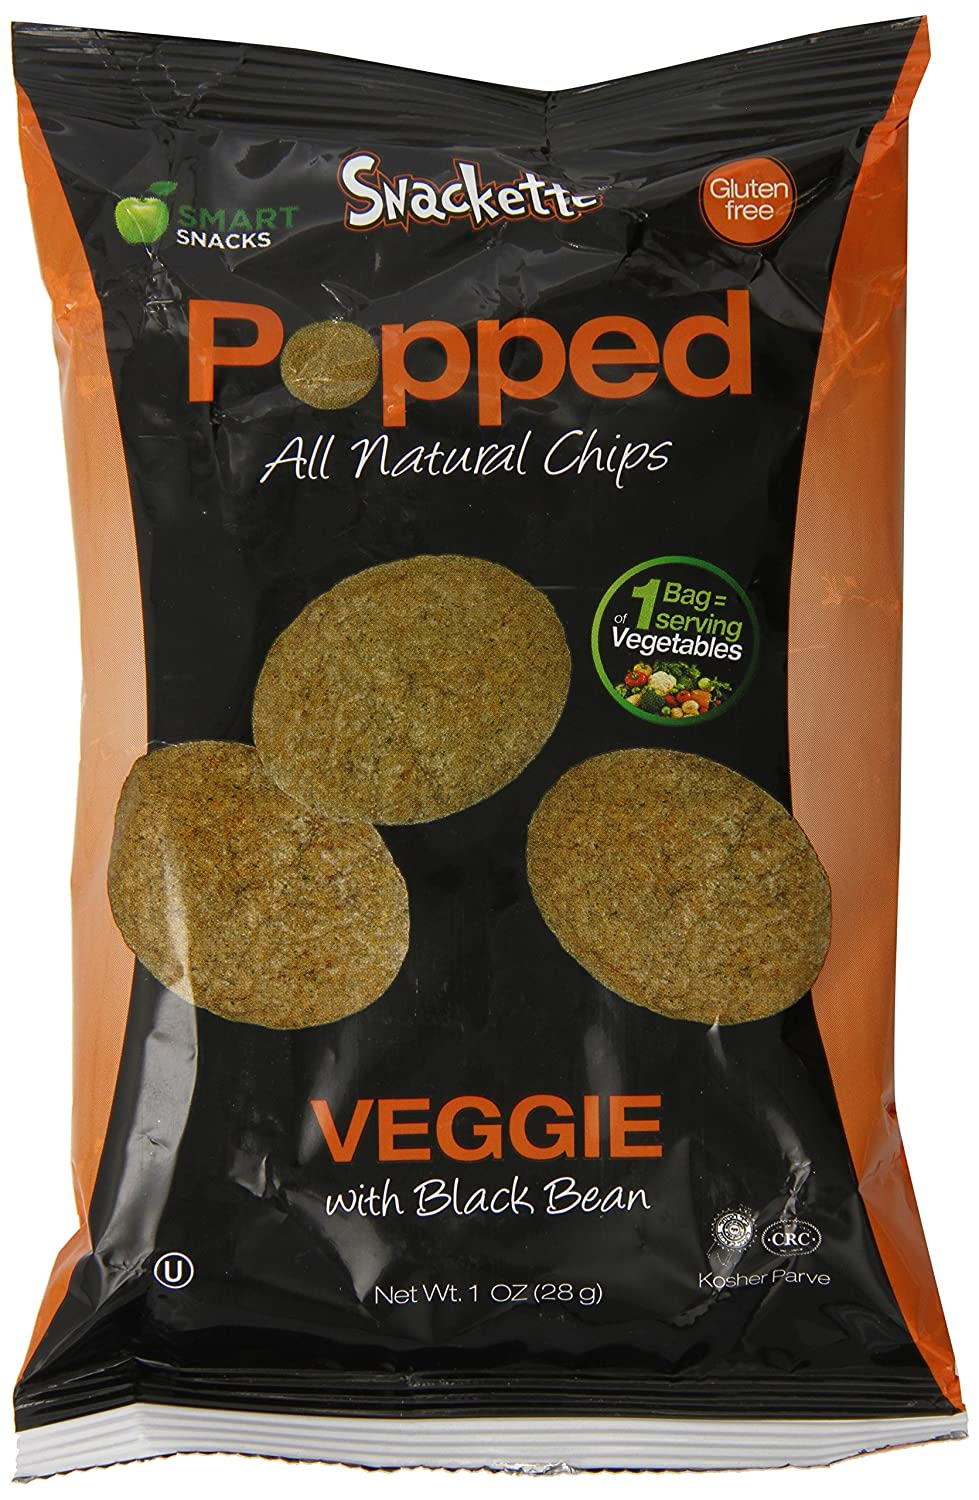 Amazon.com: SNackette Popped Chips with Black Bean Veggie, 1 Ounce ...